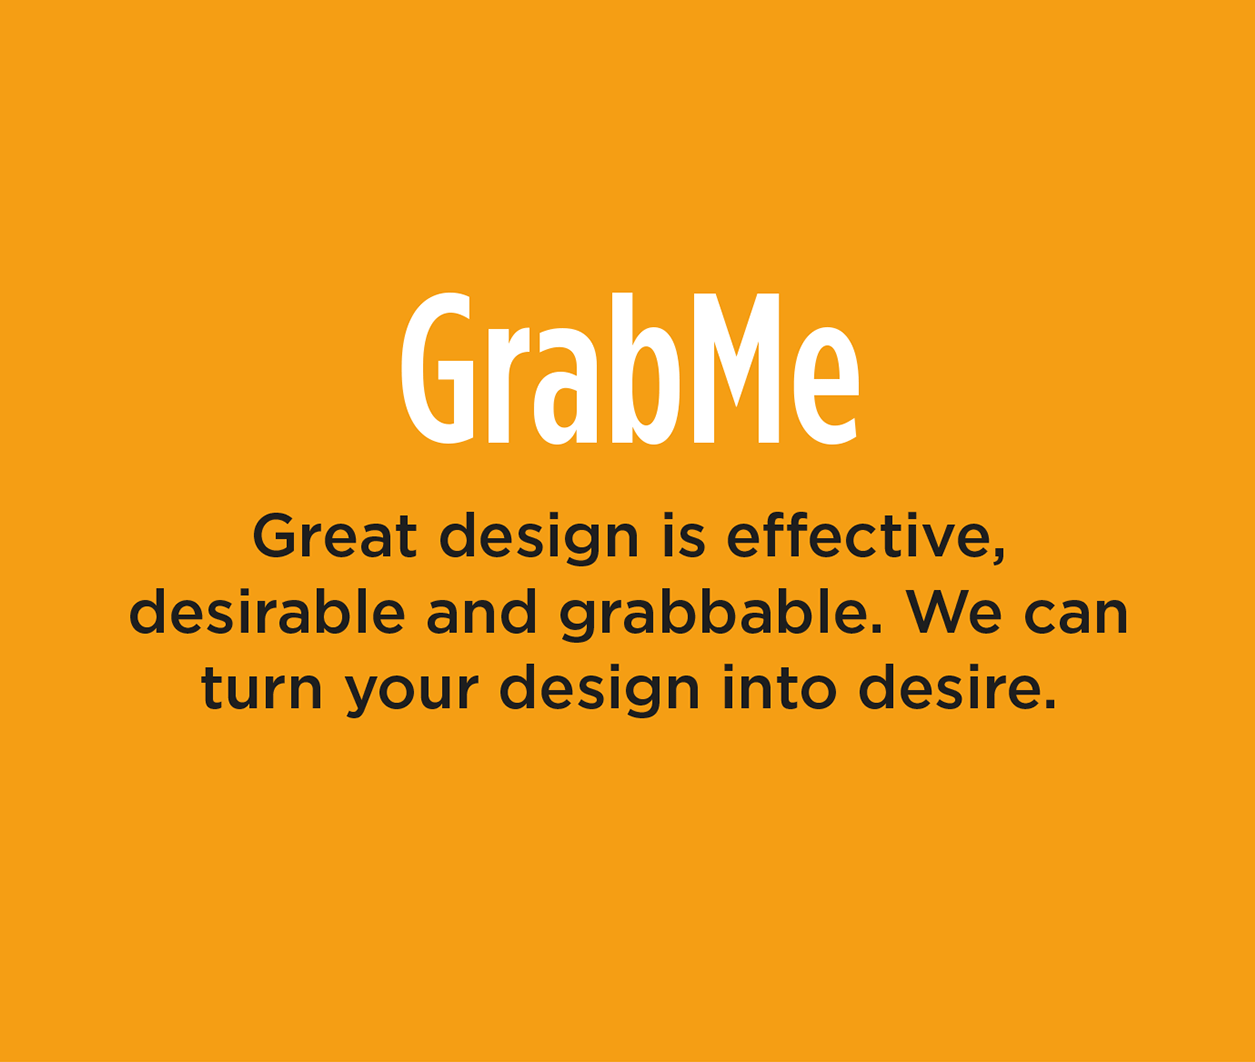 GrabMe - Great design is effective, desirable and grabbable. We can turn your design into desire.